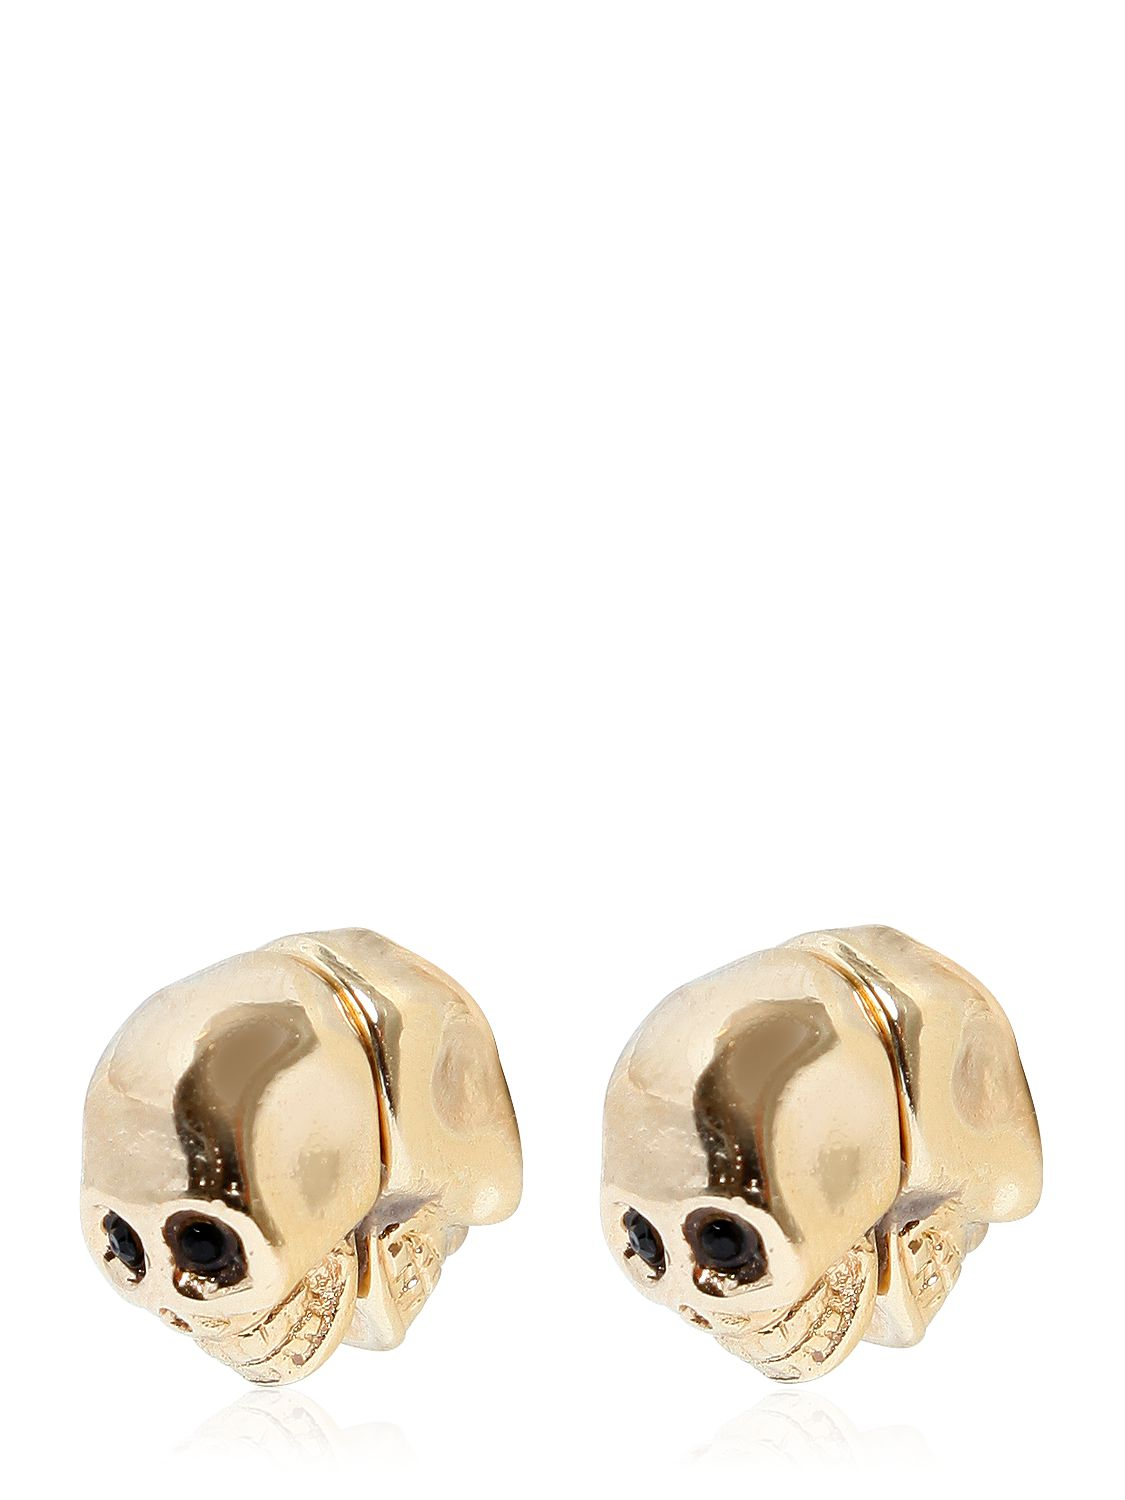 Givenchy Skulls Earrings in Metallics